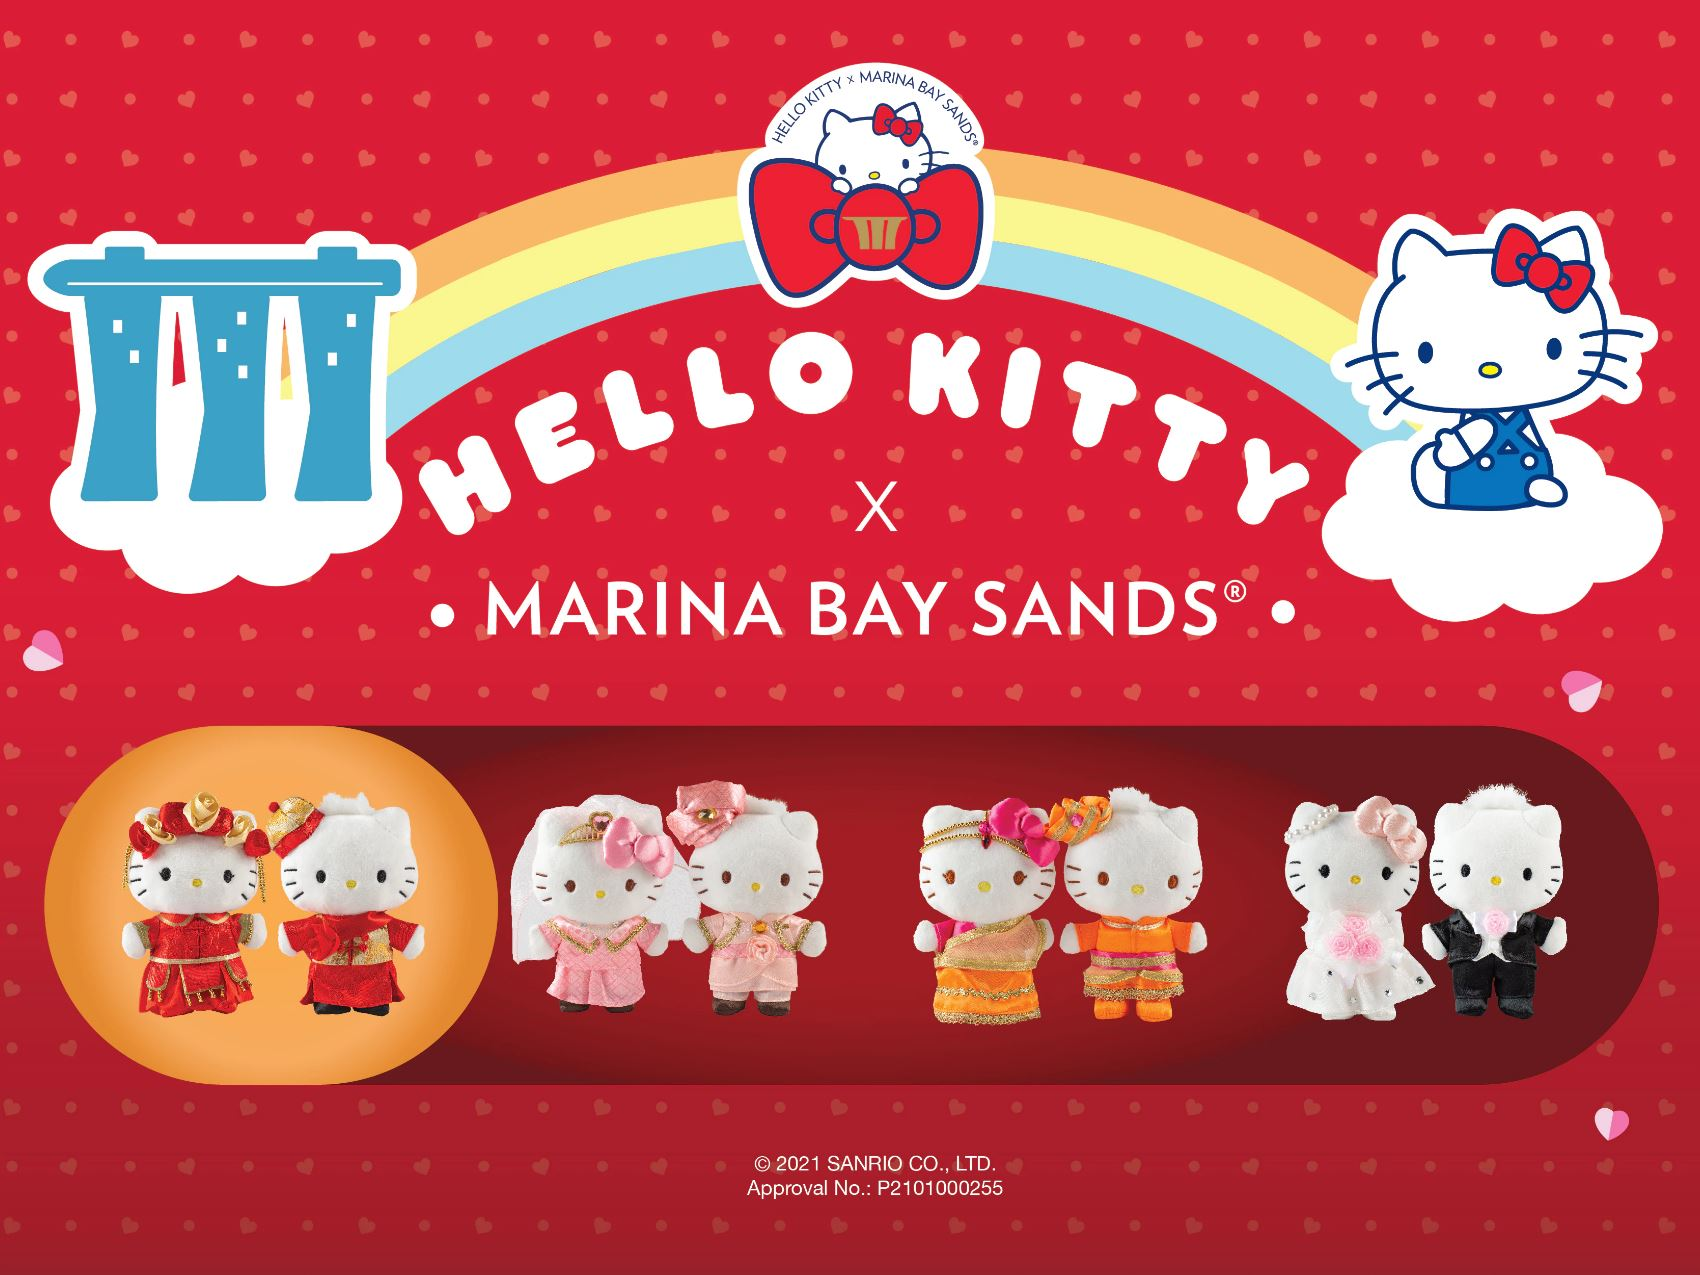 Limited Edition Hello Kitty Wedding Plush Sets Available At Marina Bay Sands From 1 Mar - 30 Jun 2021